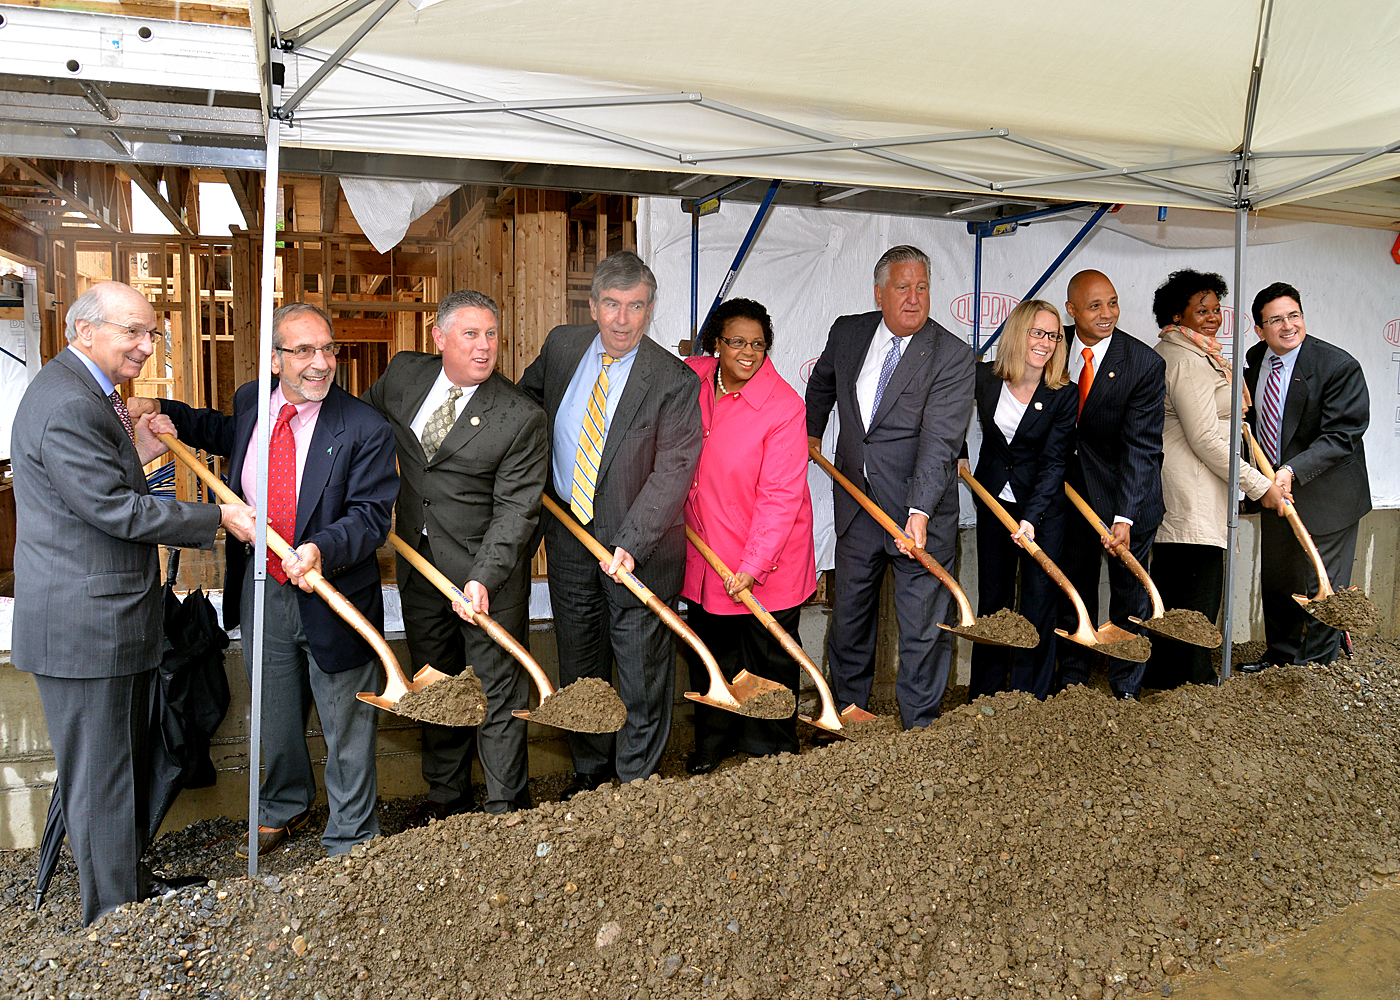 Assemblymember McDonald joins other state and local elected officials at the groundbreaking for Albany South End Revitalization Phase 3 on June 13, 2013.